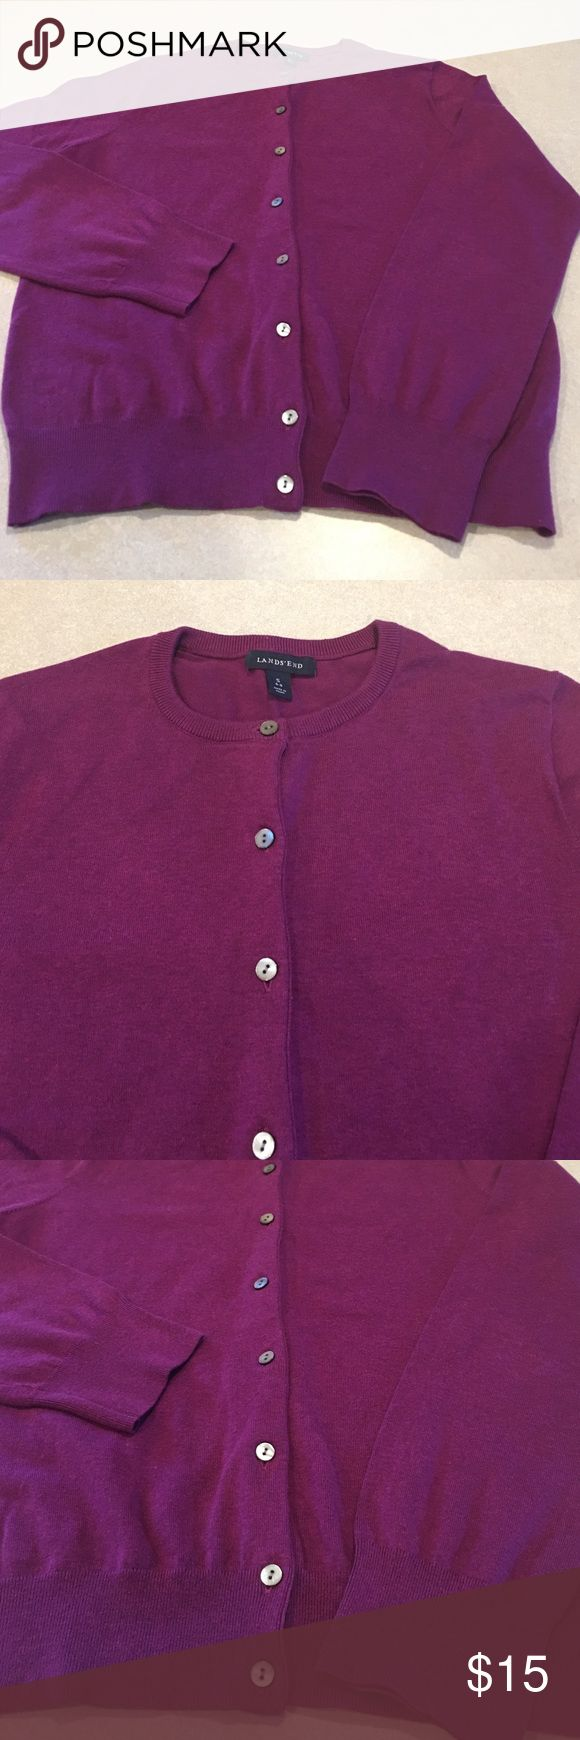 ✨Lands end cardigan✨ Very cute lands ends plum colored cardigan. Buttons down the front. In excellent condition. Lands' End Tops